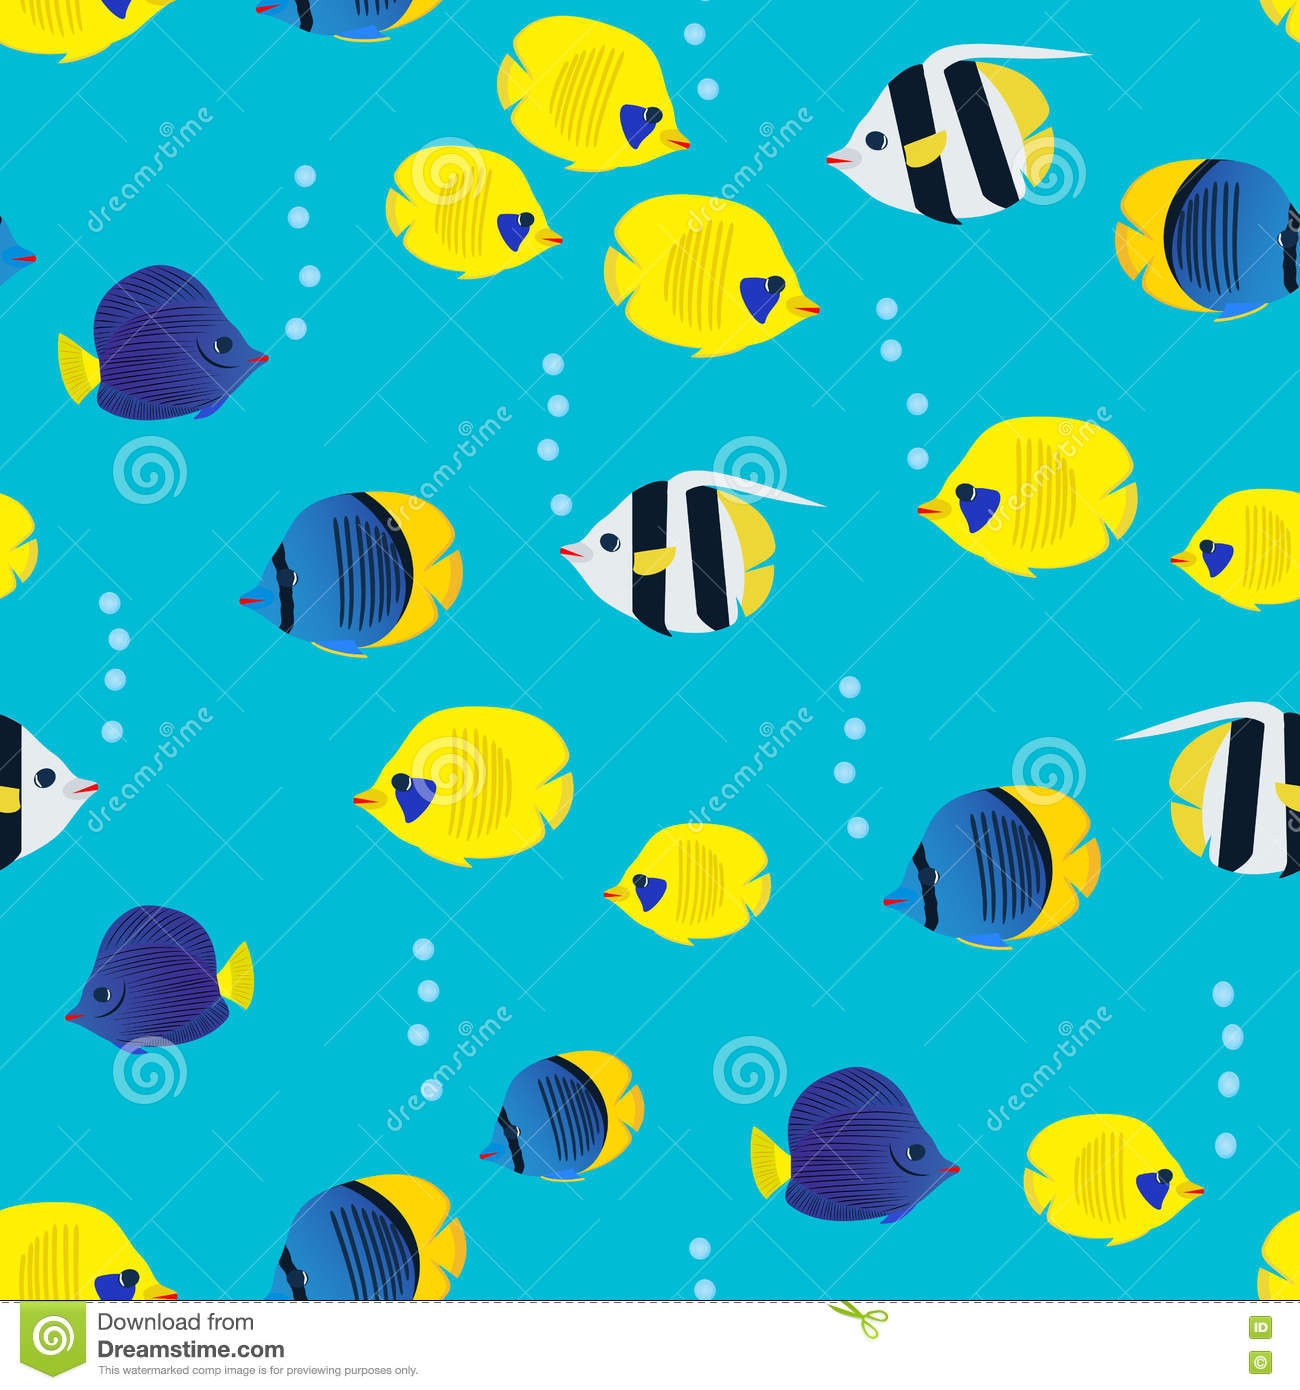 colourful seamless pattern with cartoon coral reef vivid fish on